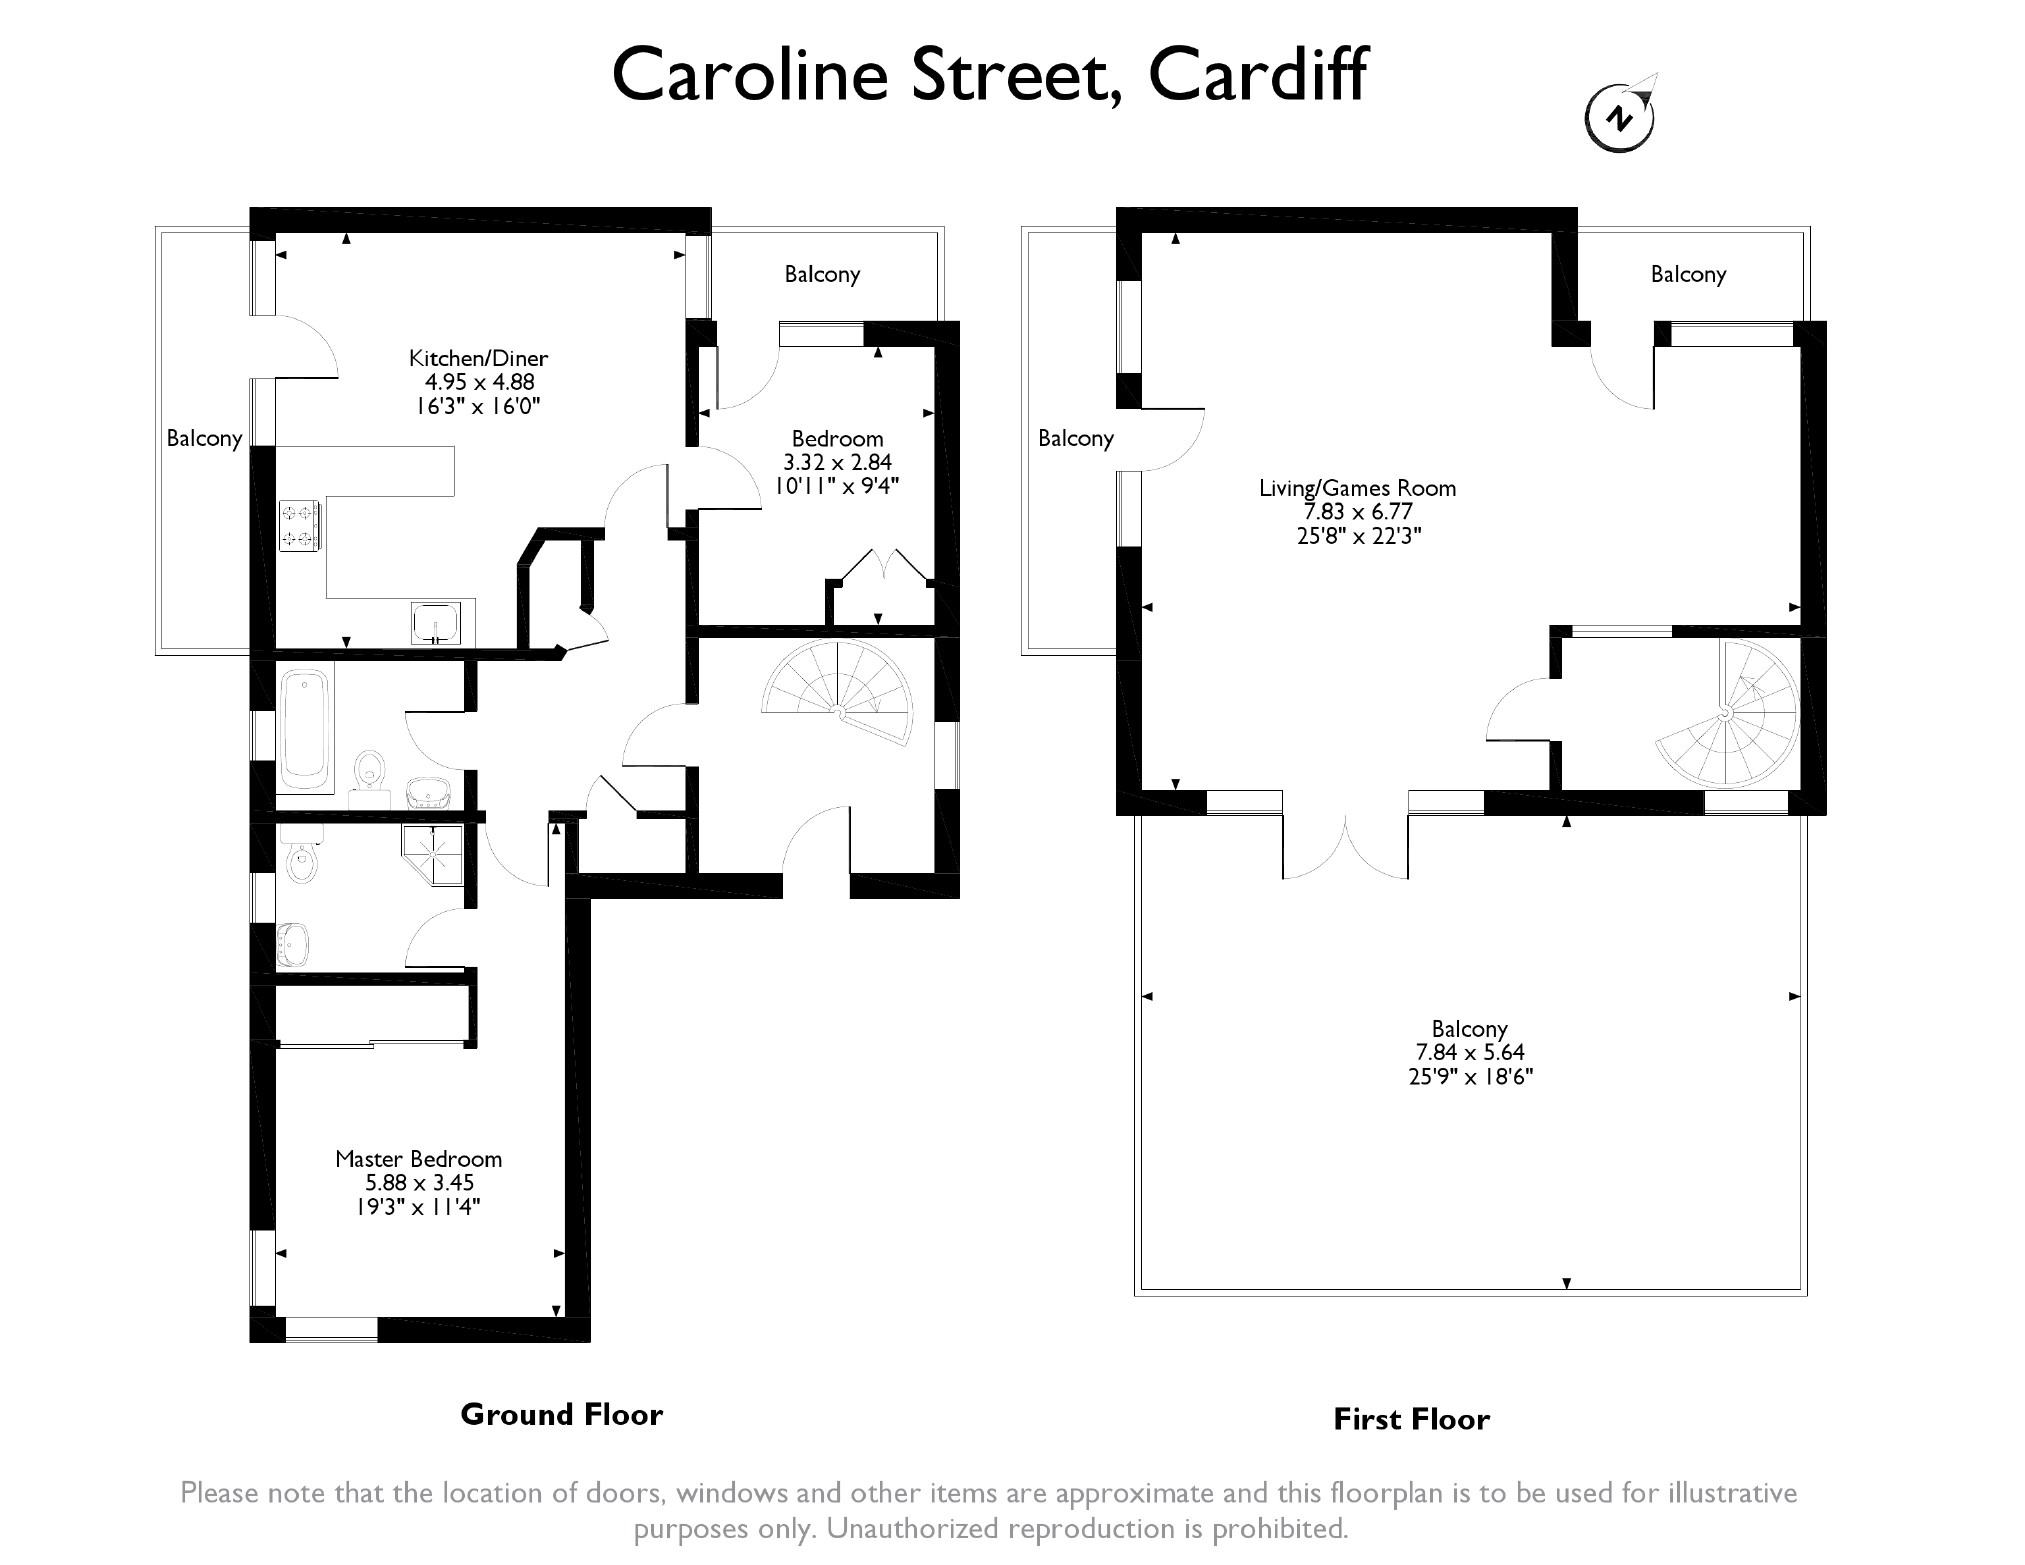 2 bedroom Flat for sale in Cardiff